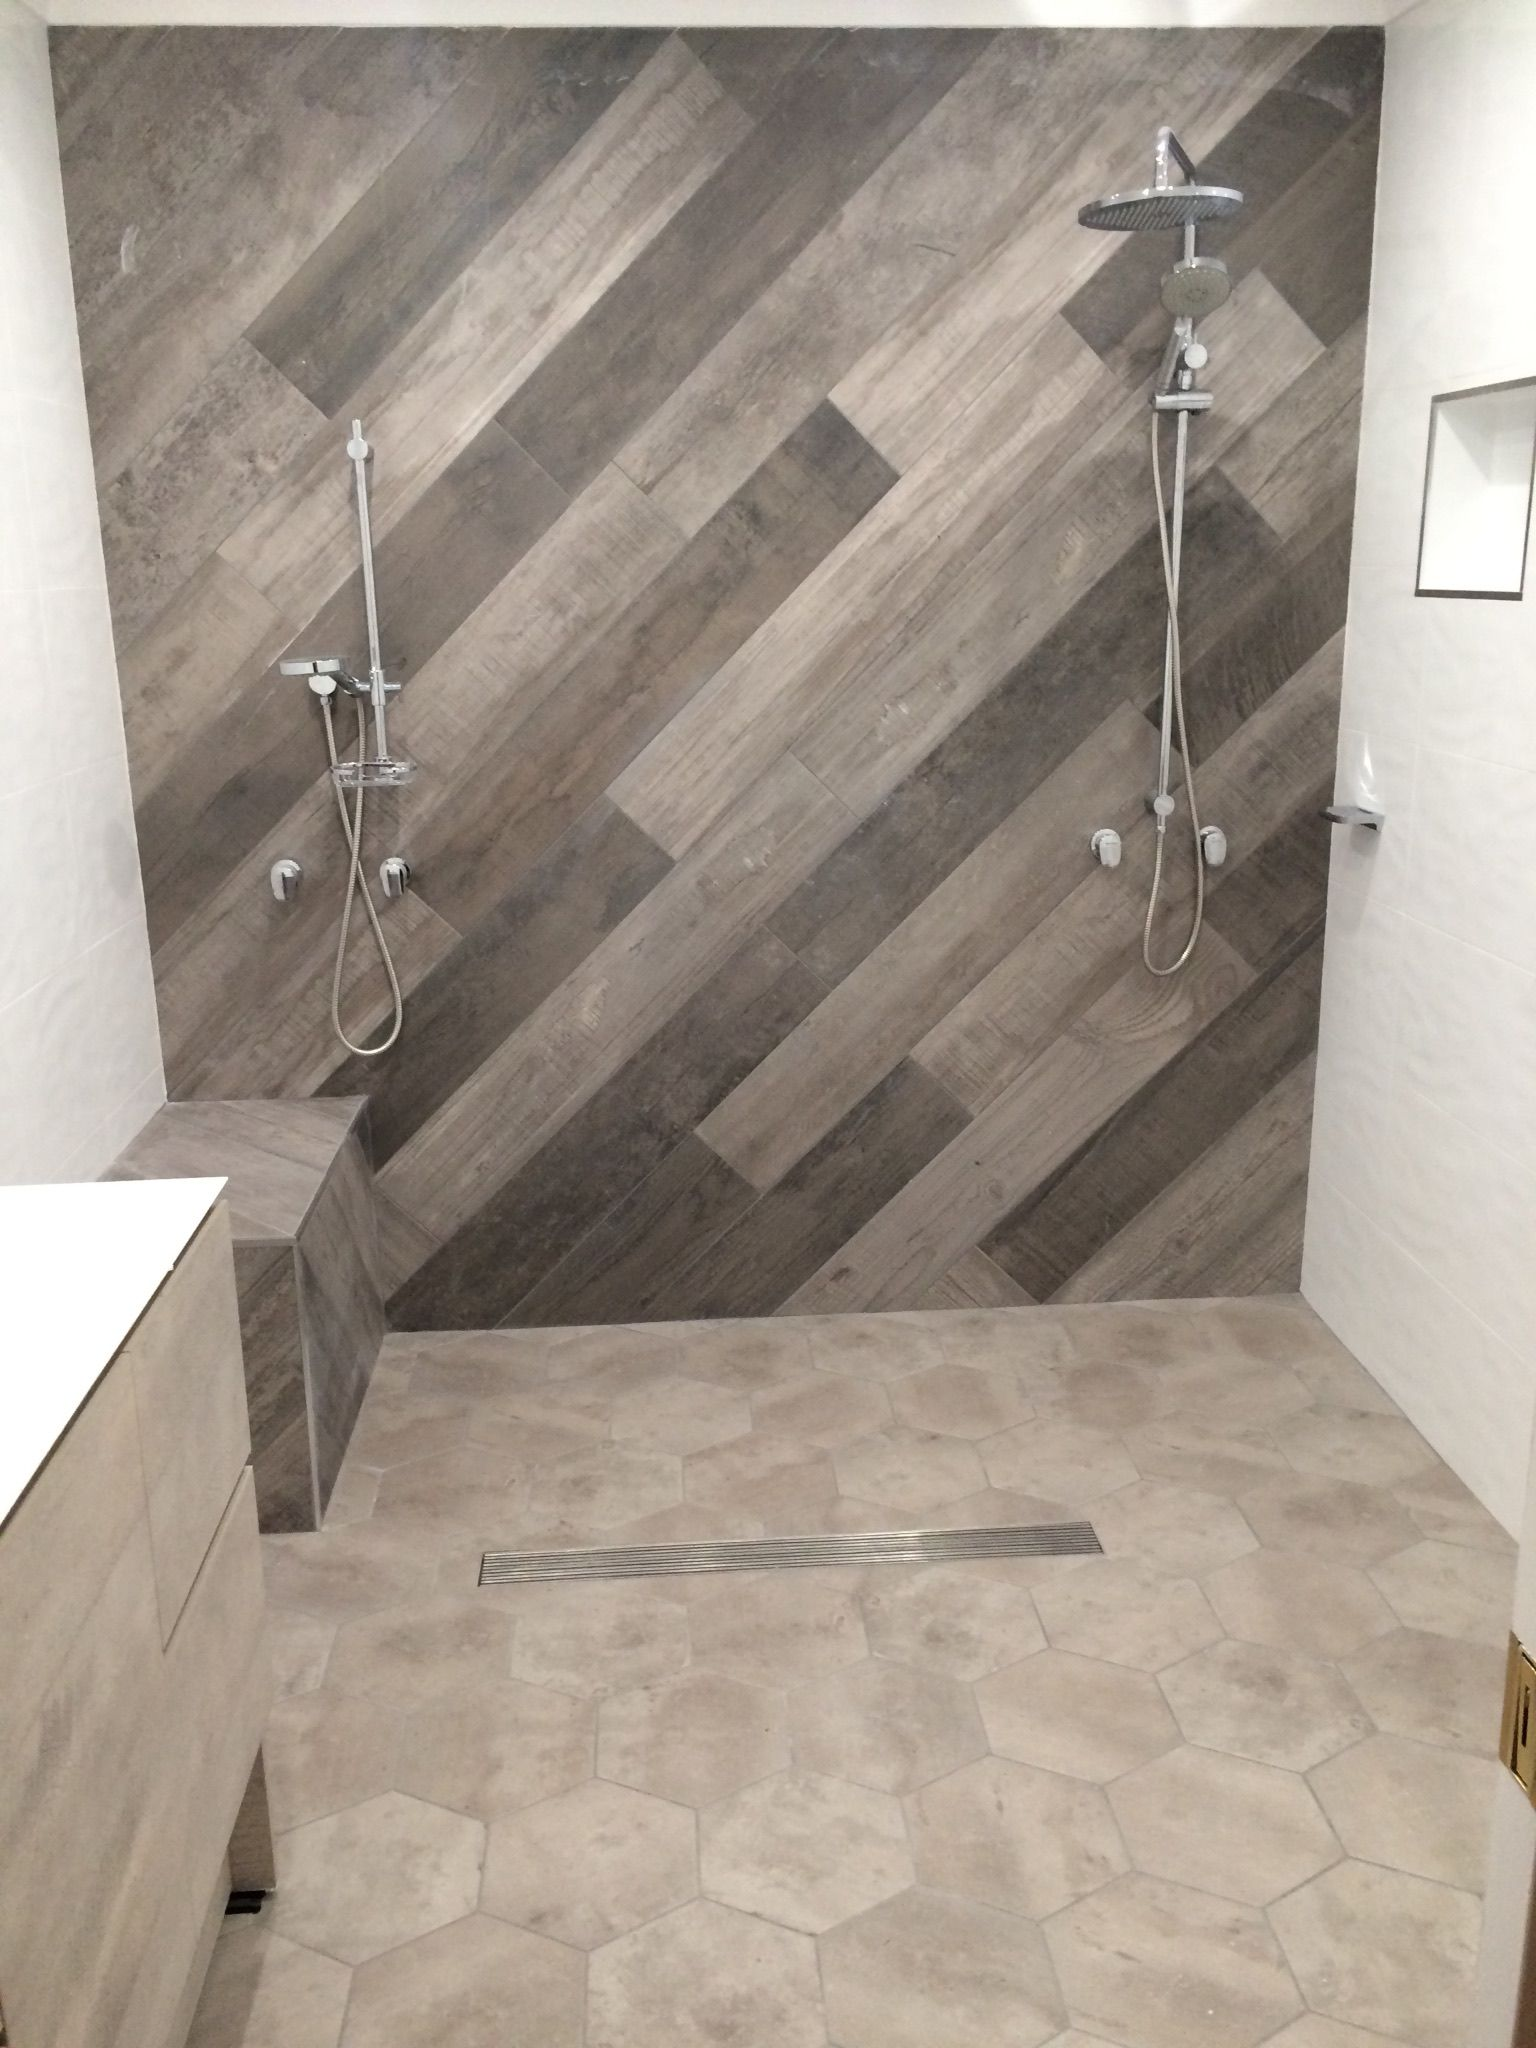 Feature wall timber look tiles walls white waves wall tile feature wall timber look tiles walls white waves wall tile floor concrete hexagon dailygadgetfo Image collections